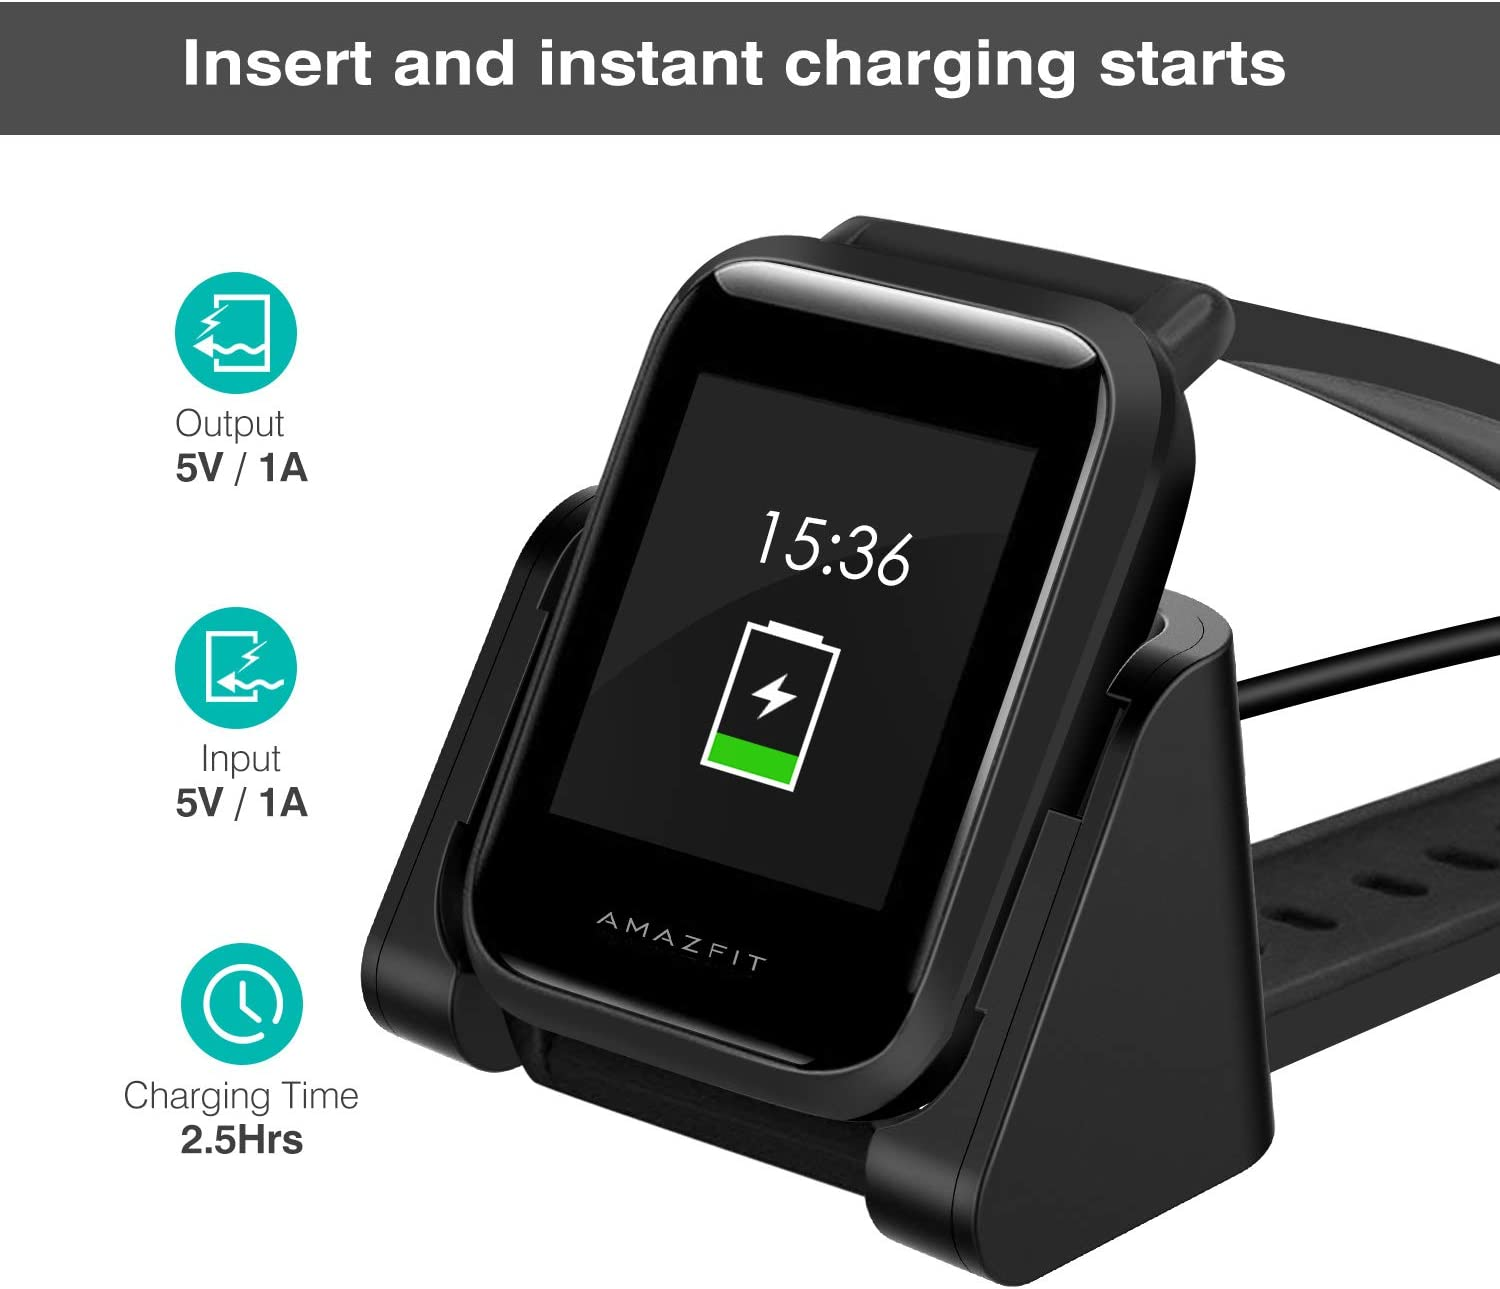 MoKo for Amazfit Bip Charger, Portable Replacement USB Charger Charging Stand Adapter Station Cradle Dock with Cable for Amazfit Bip - Black